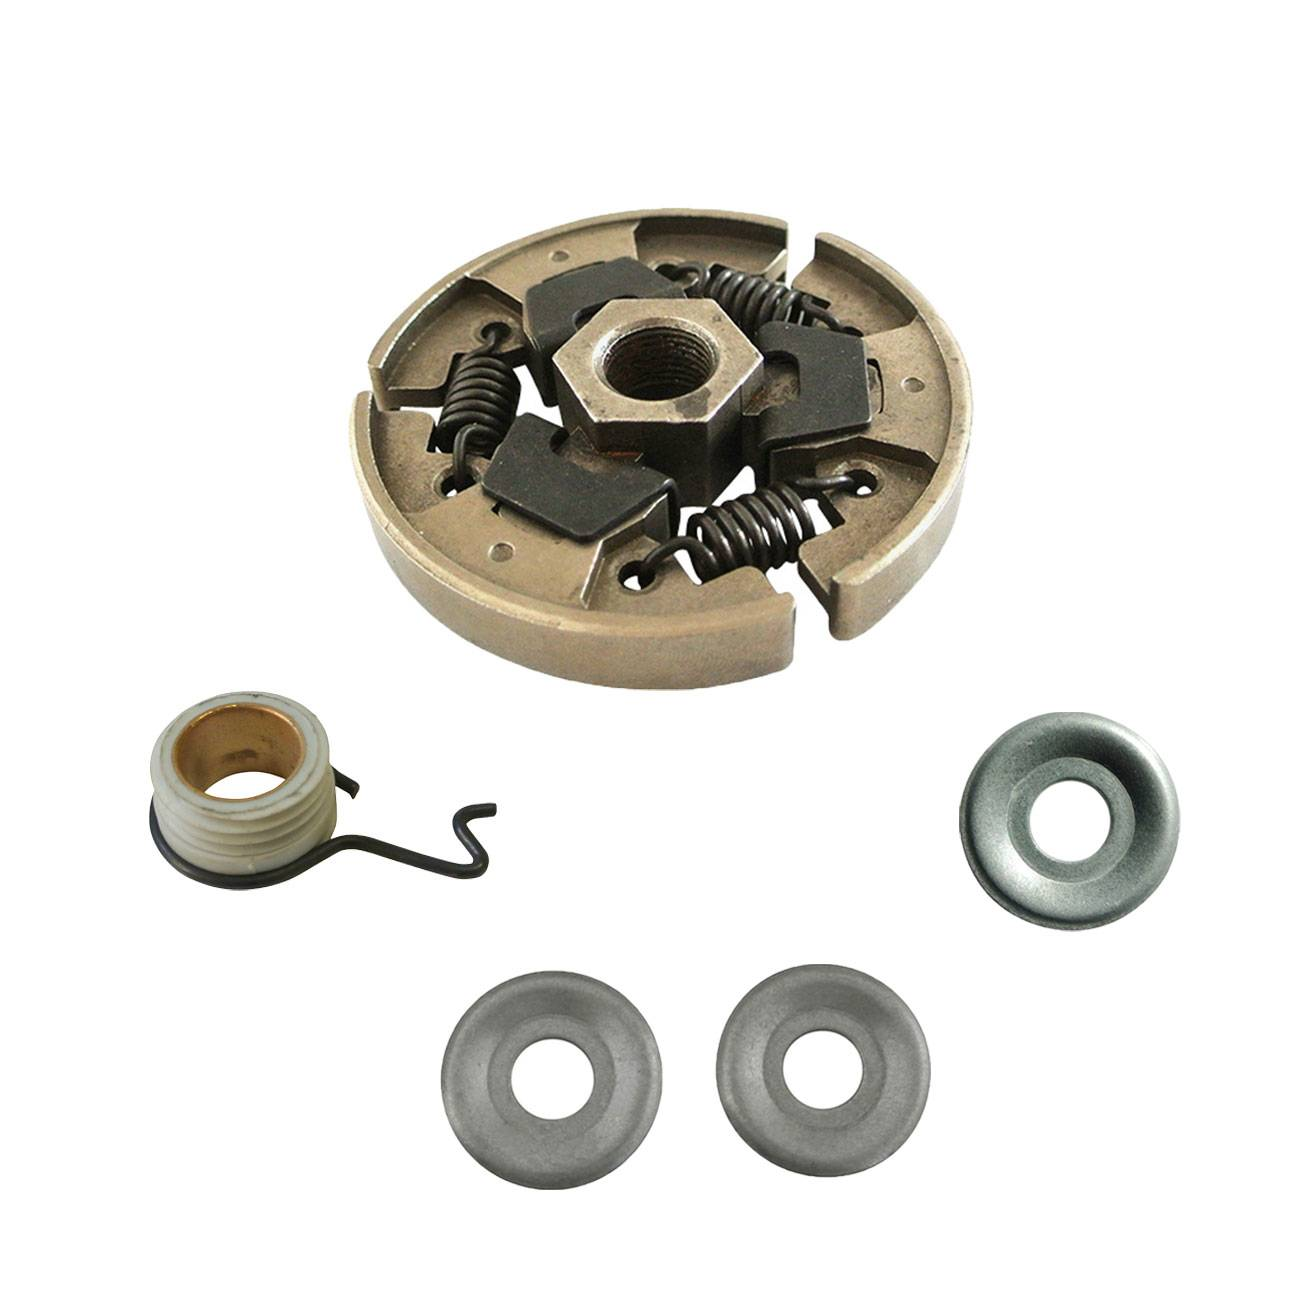 Clutch Drum Washer Worm Gear For STIHL MS170 MS180 MS210 MS170 MS230 MS250 ...